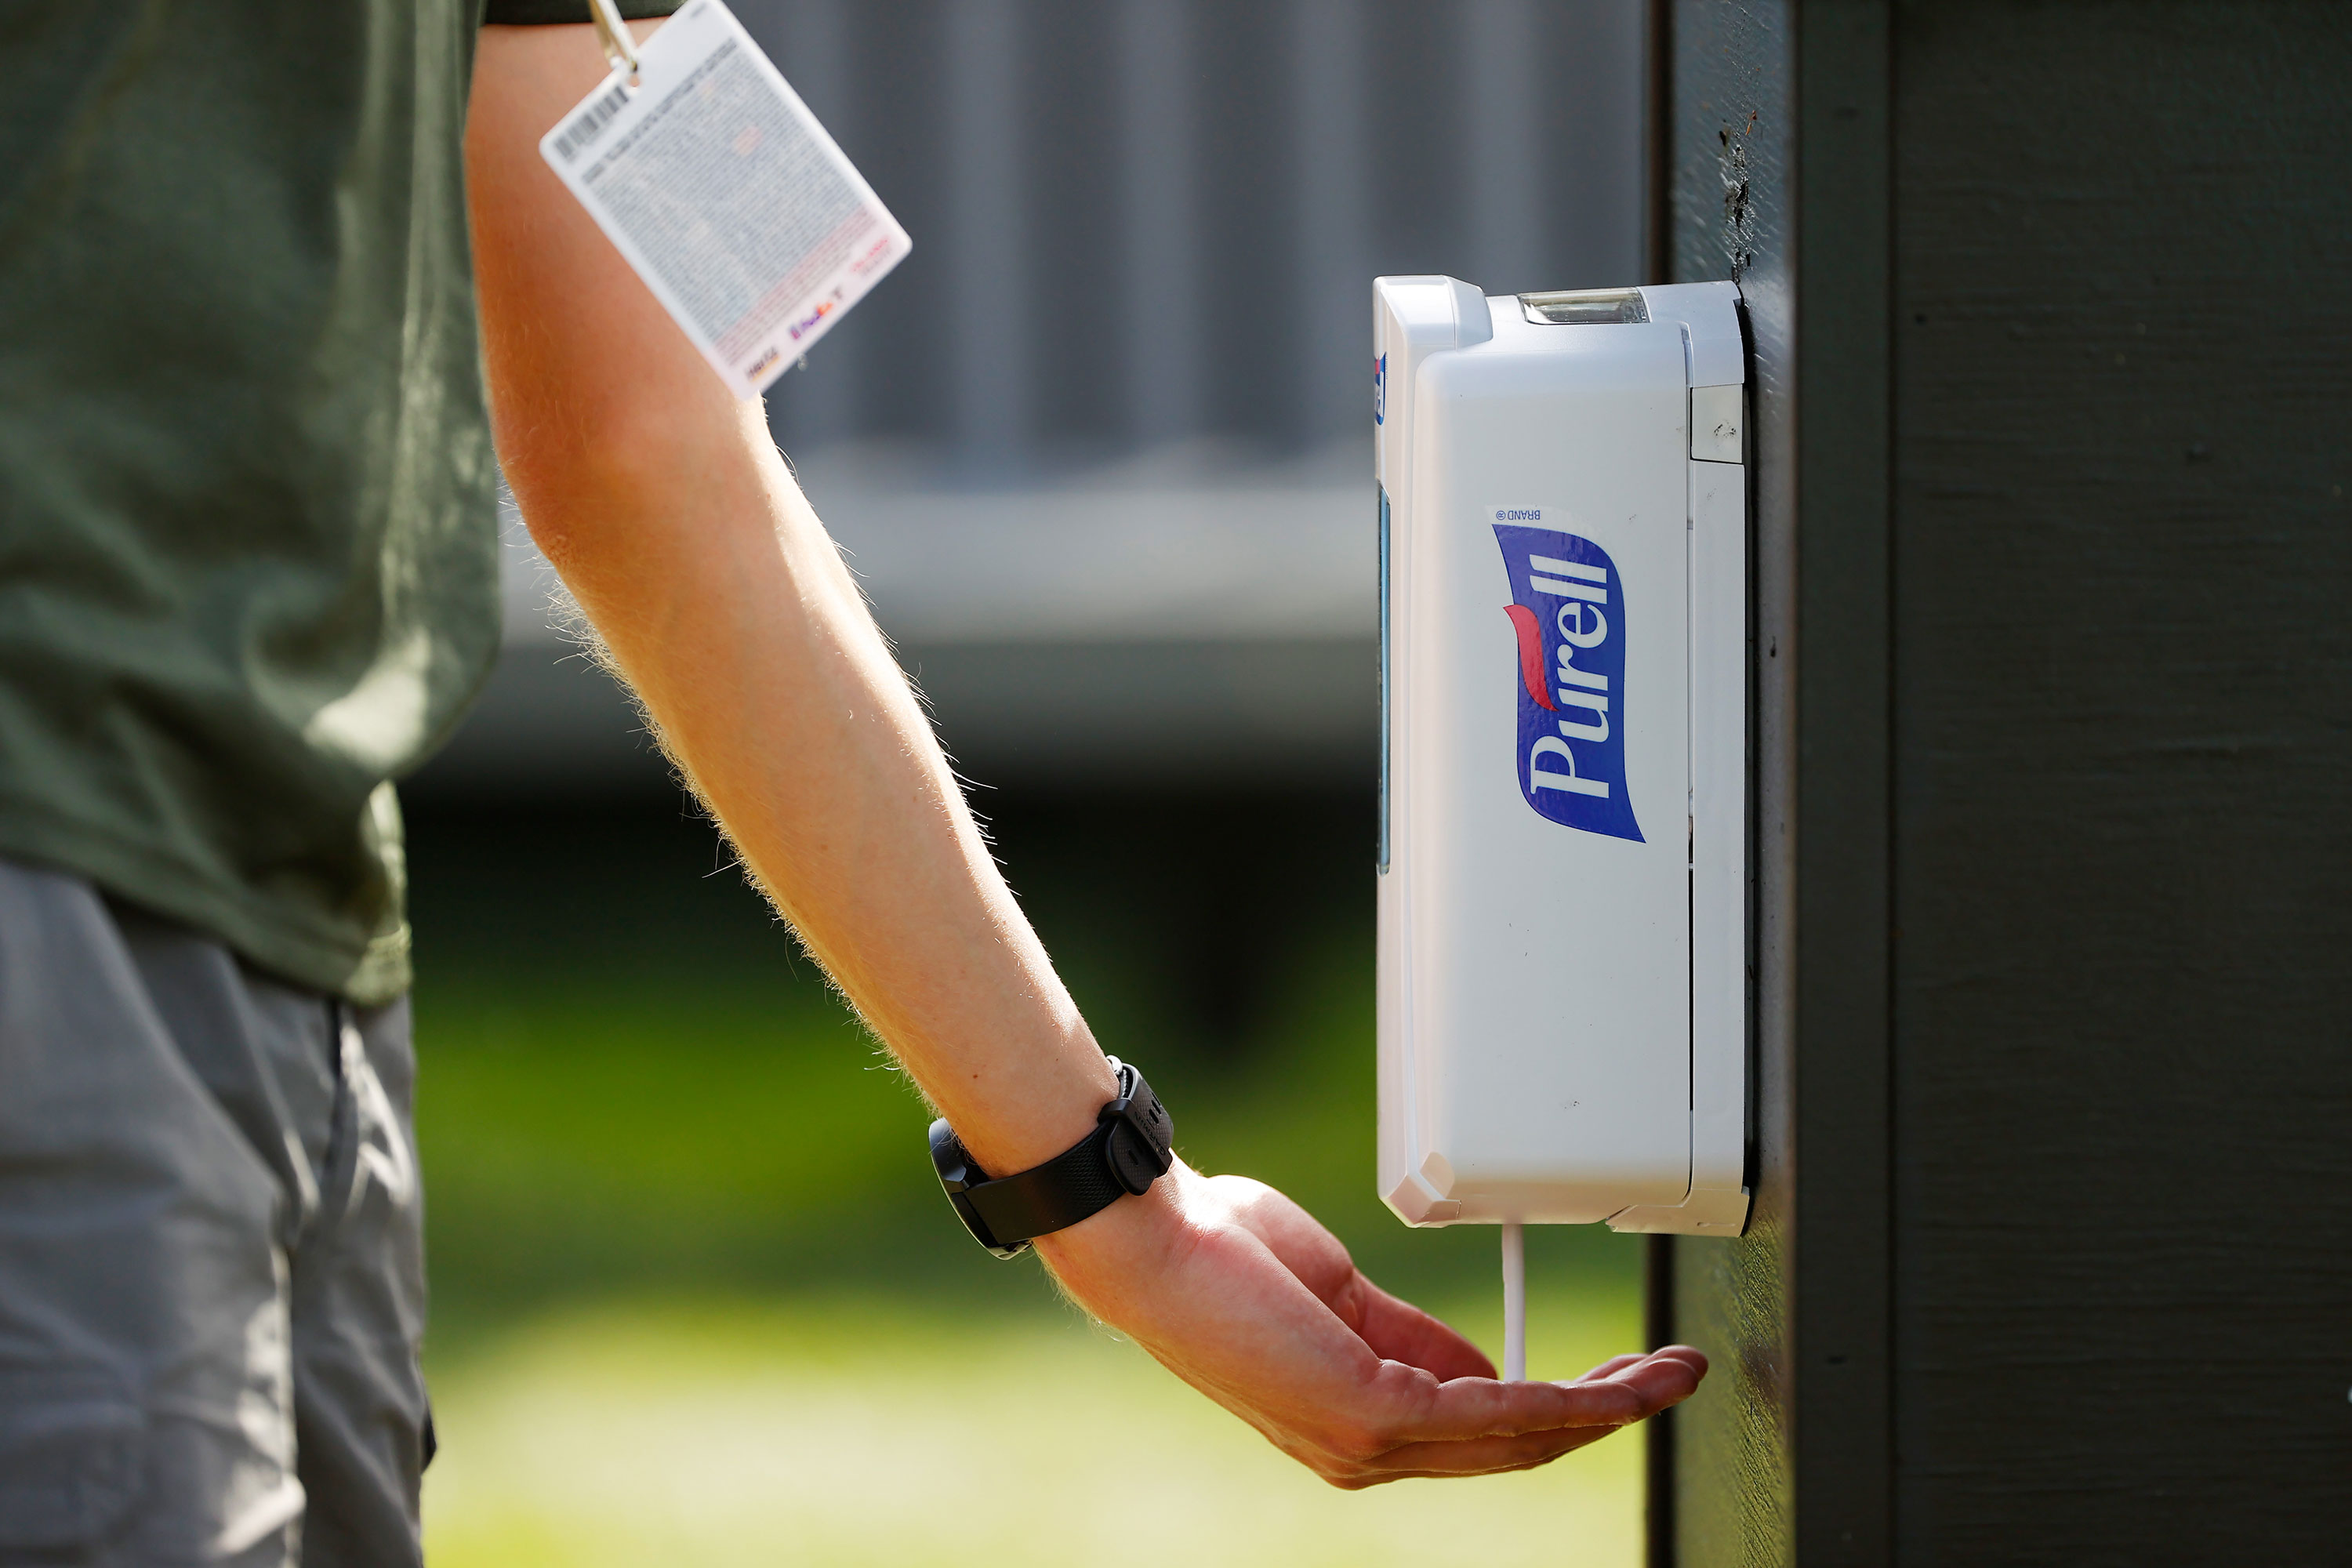 A person uses Purell hand sanitizer during the first round of the Arnold Palmer Invitational in Orlando, Florida, on March 5.